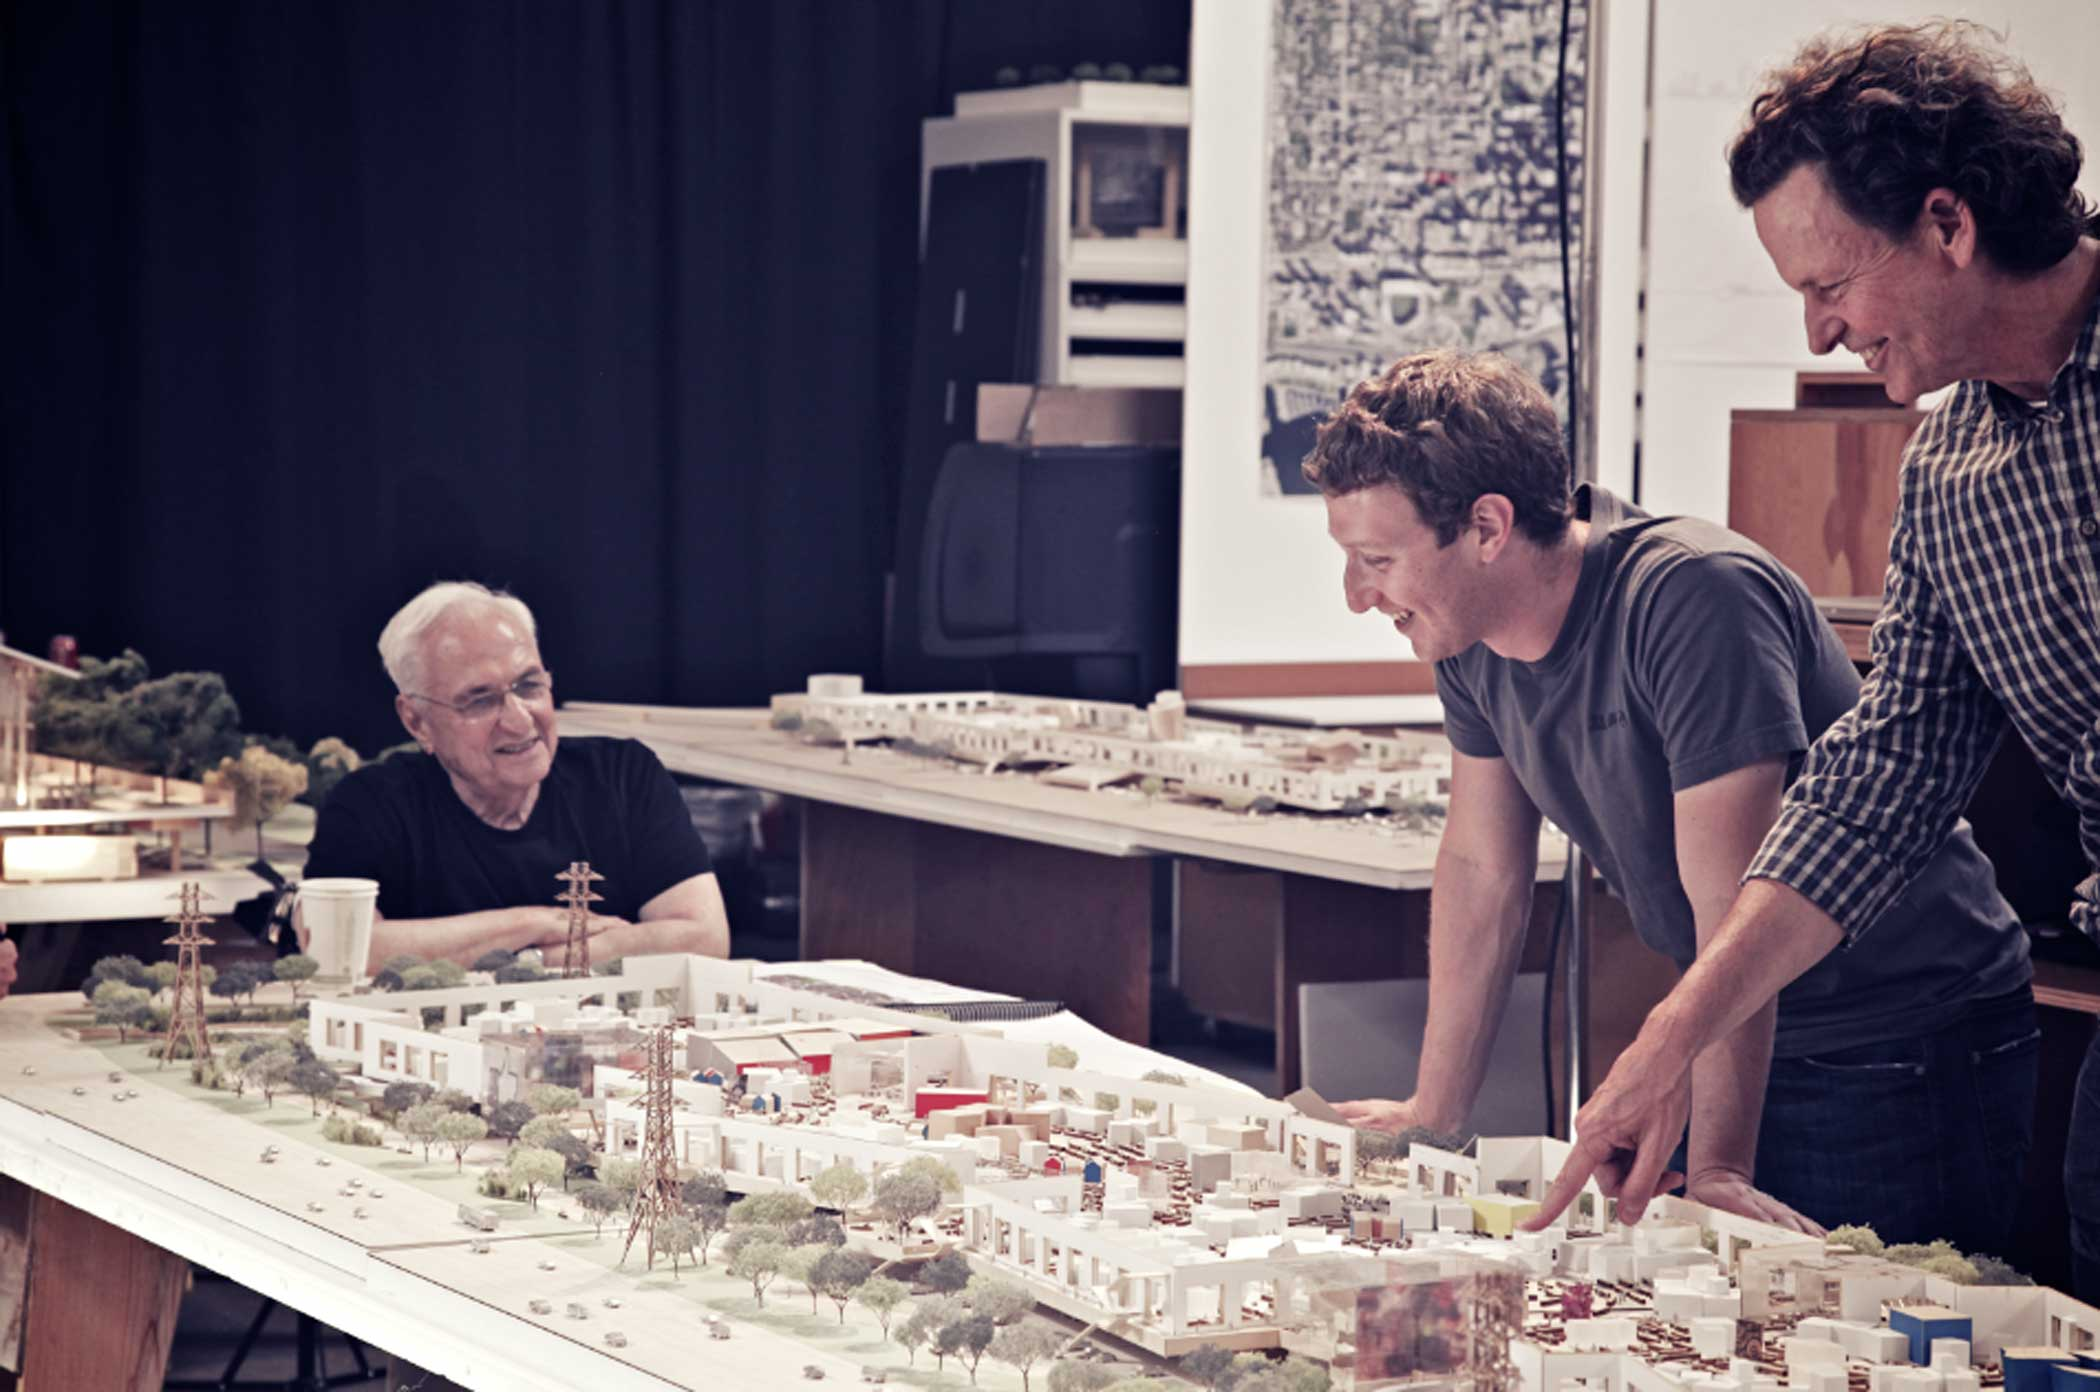 Architect Frank Gehry and Mark Zuckerberg review the model before it's construction.